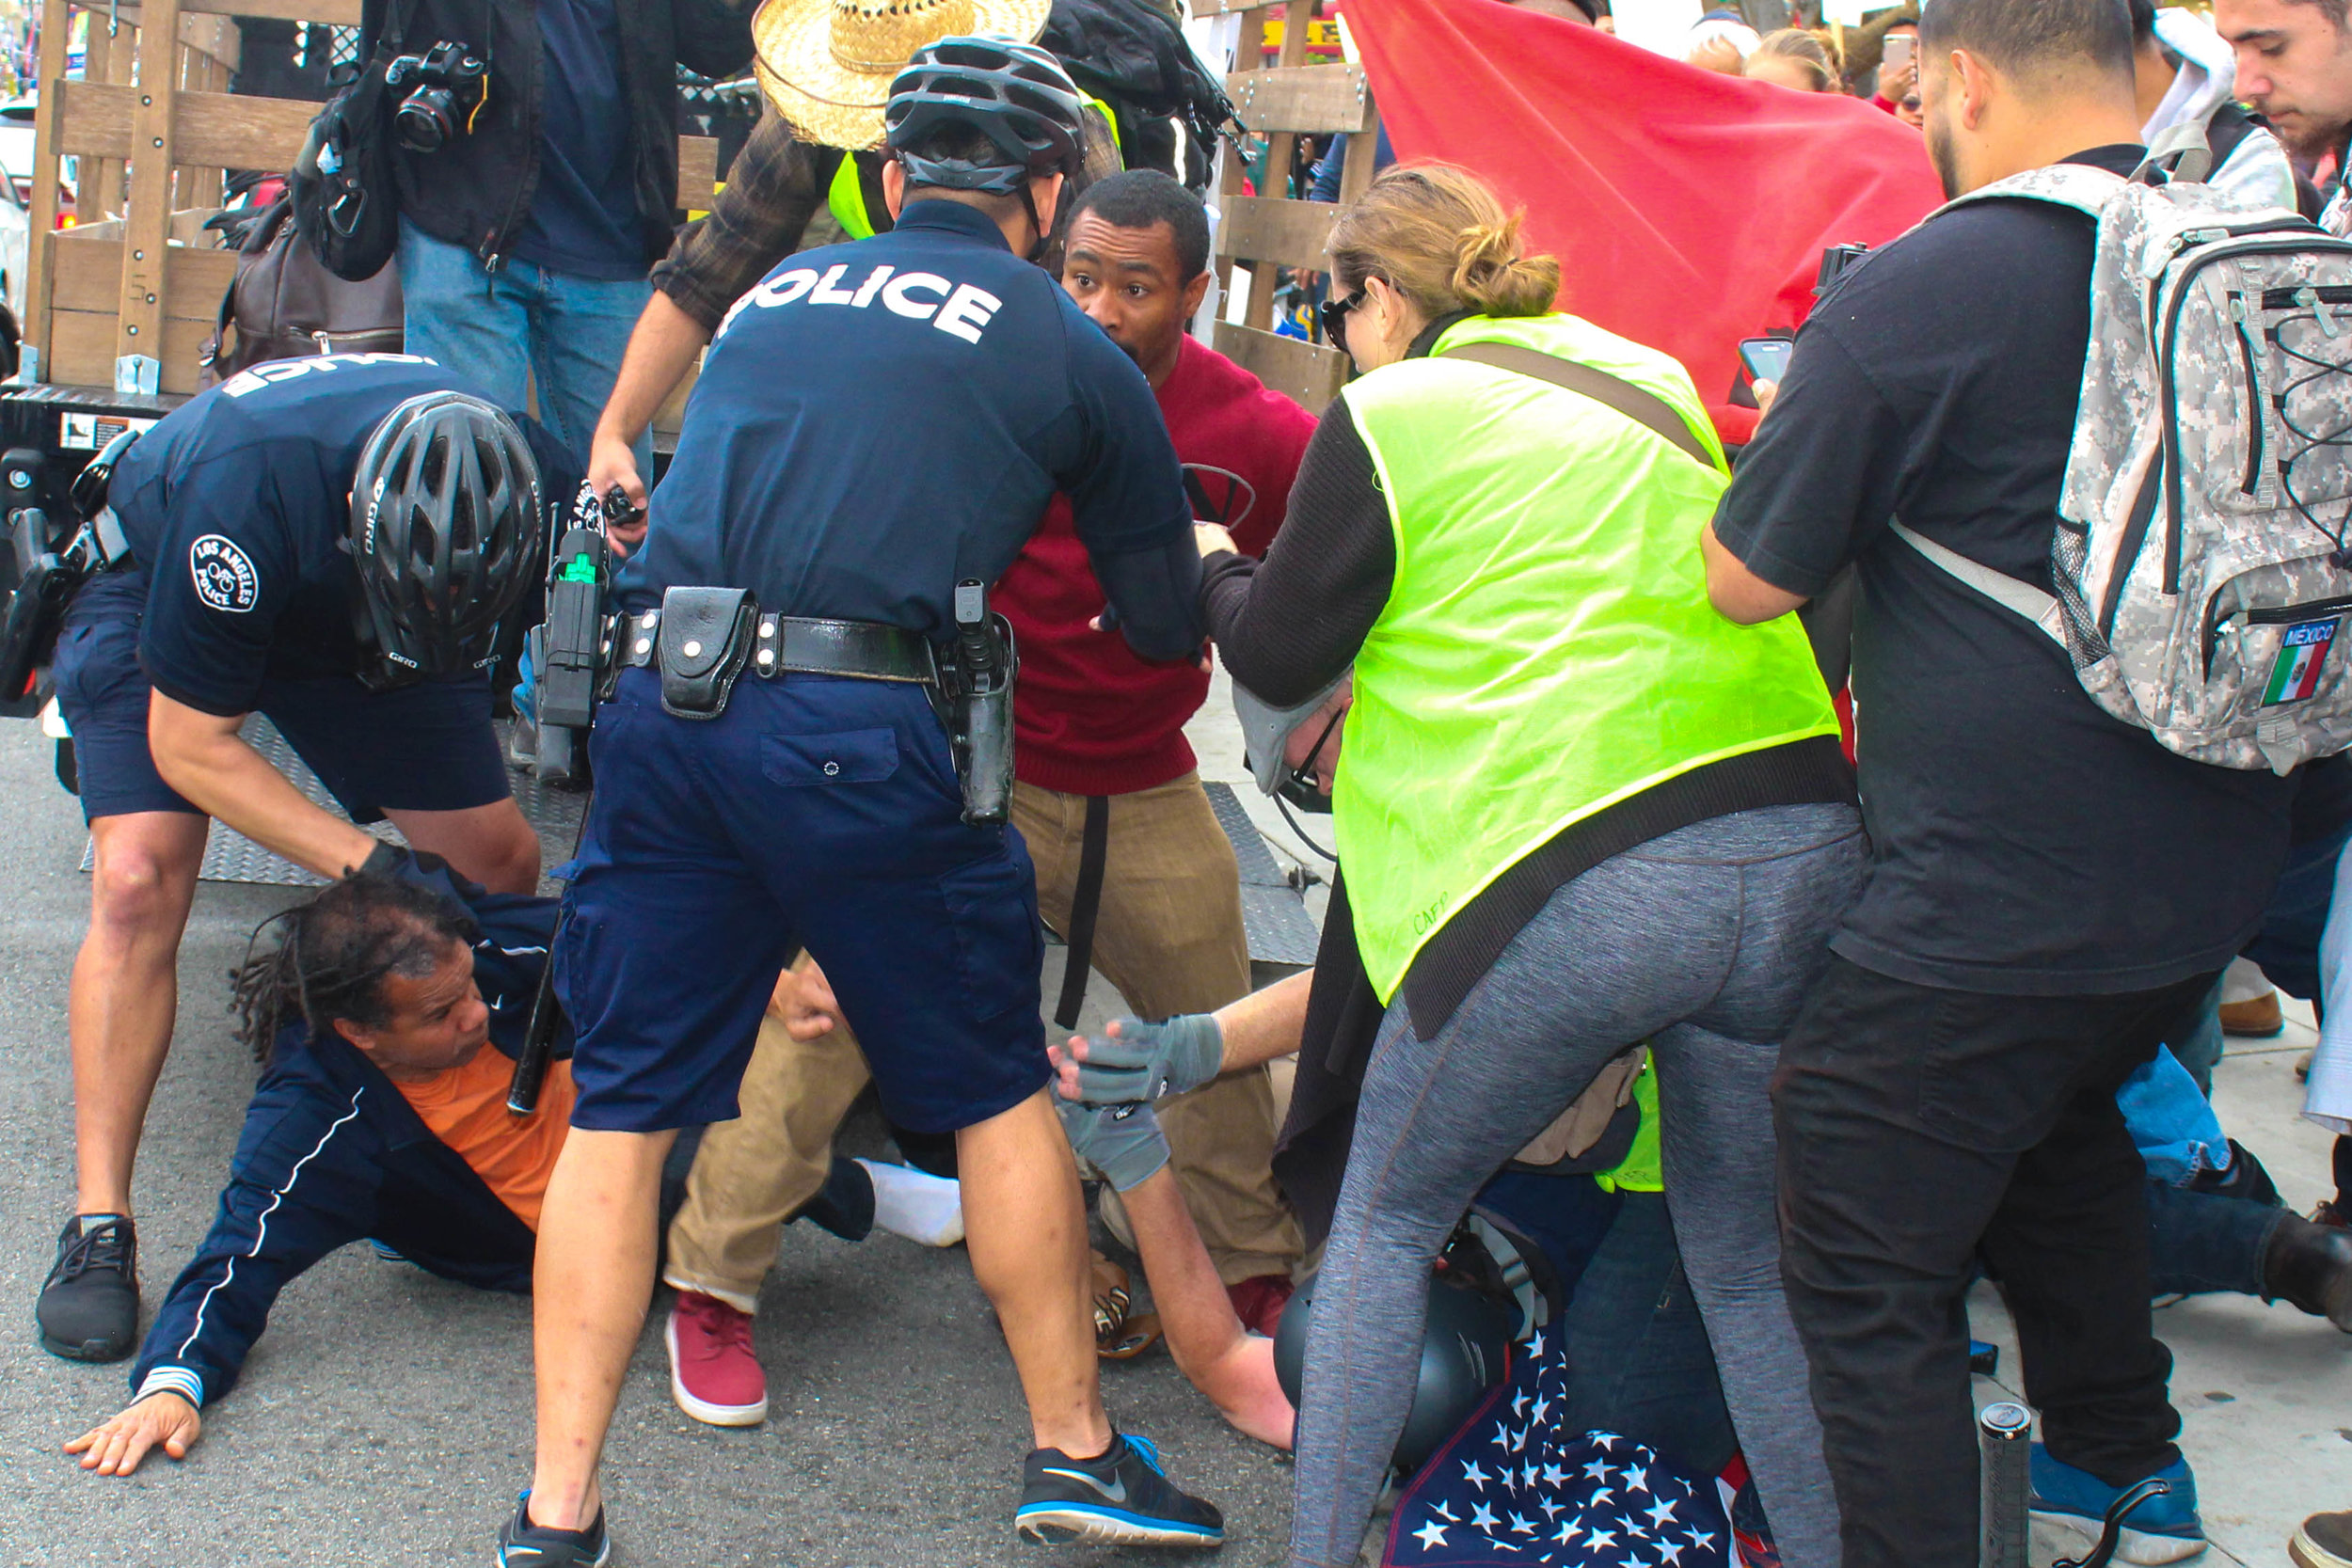 Police tackle Washington Azeveel at the May Day Protest in Downtown Los Angeles on May 1, 2018 because two event attendees began pushing one another. (Daniel Farr/Corsair Photo)